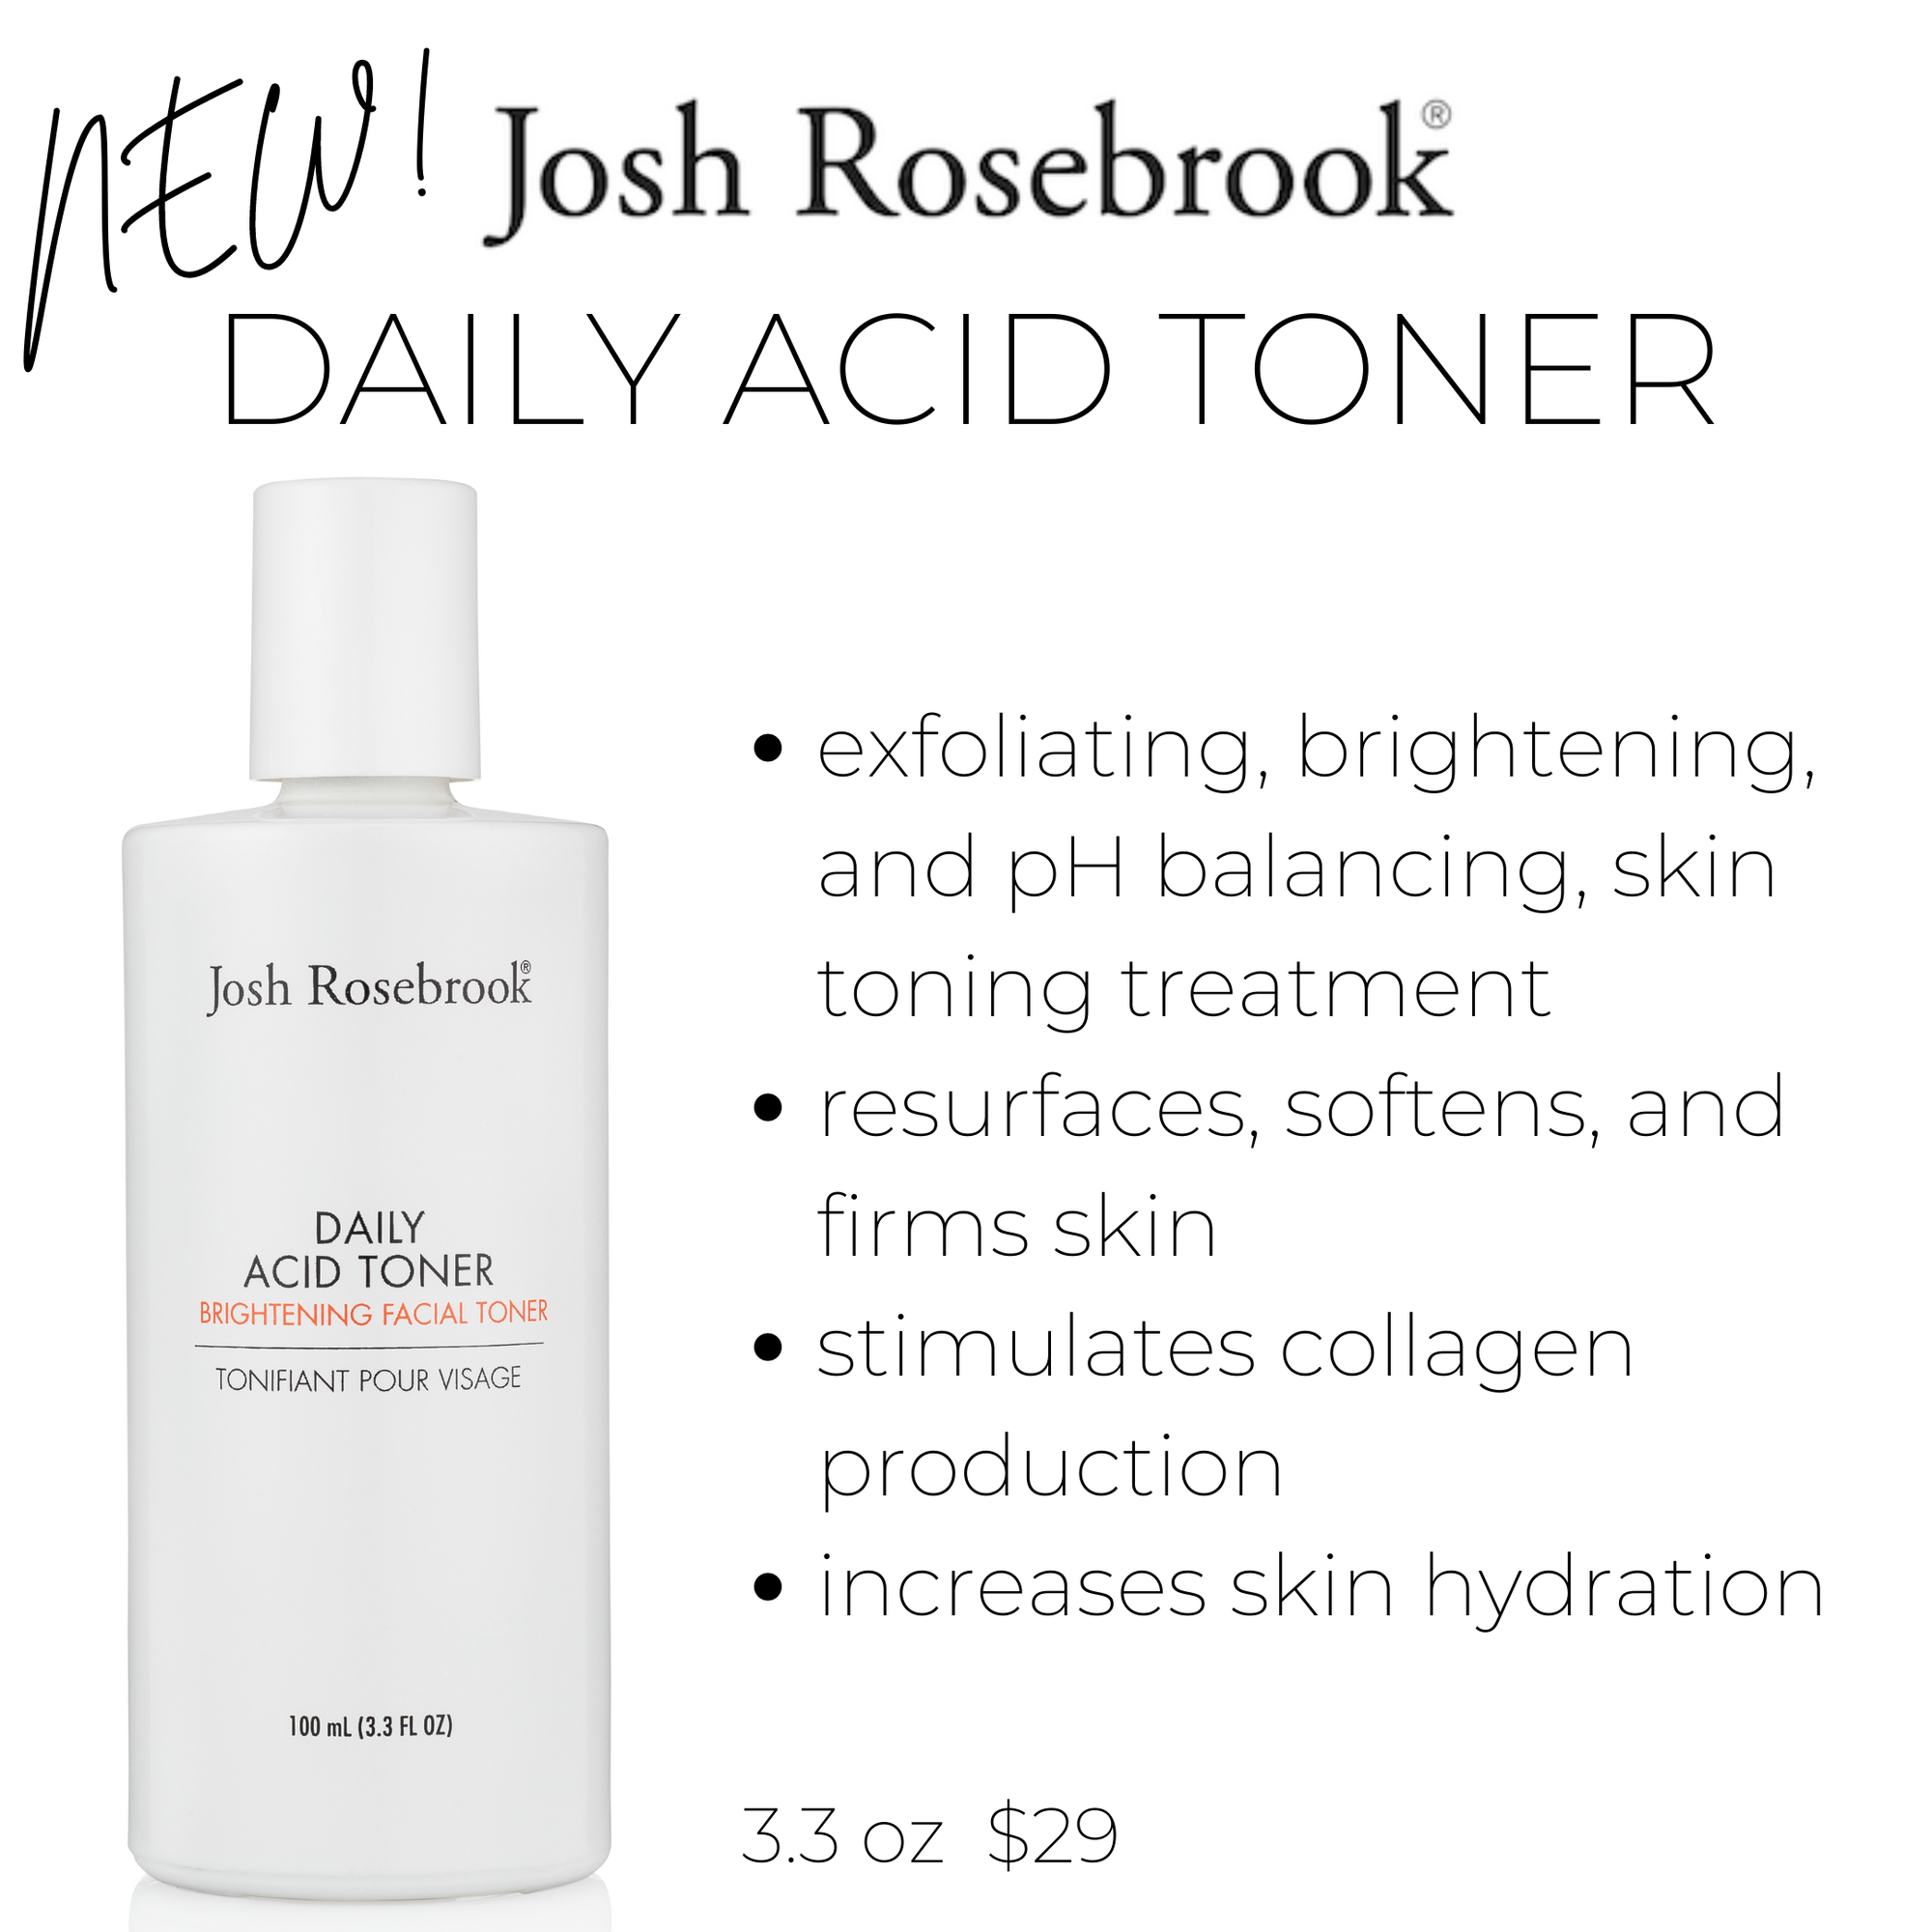 new! josh rosebrook daily acid toner